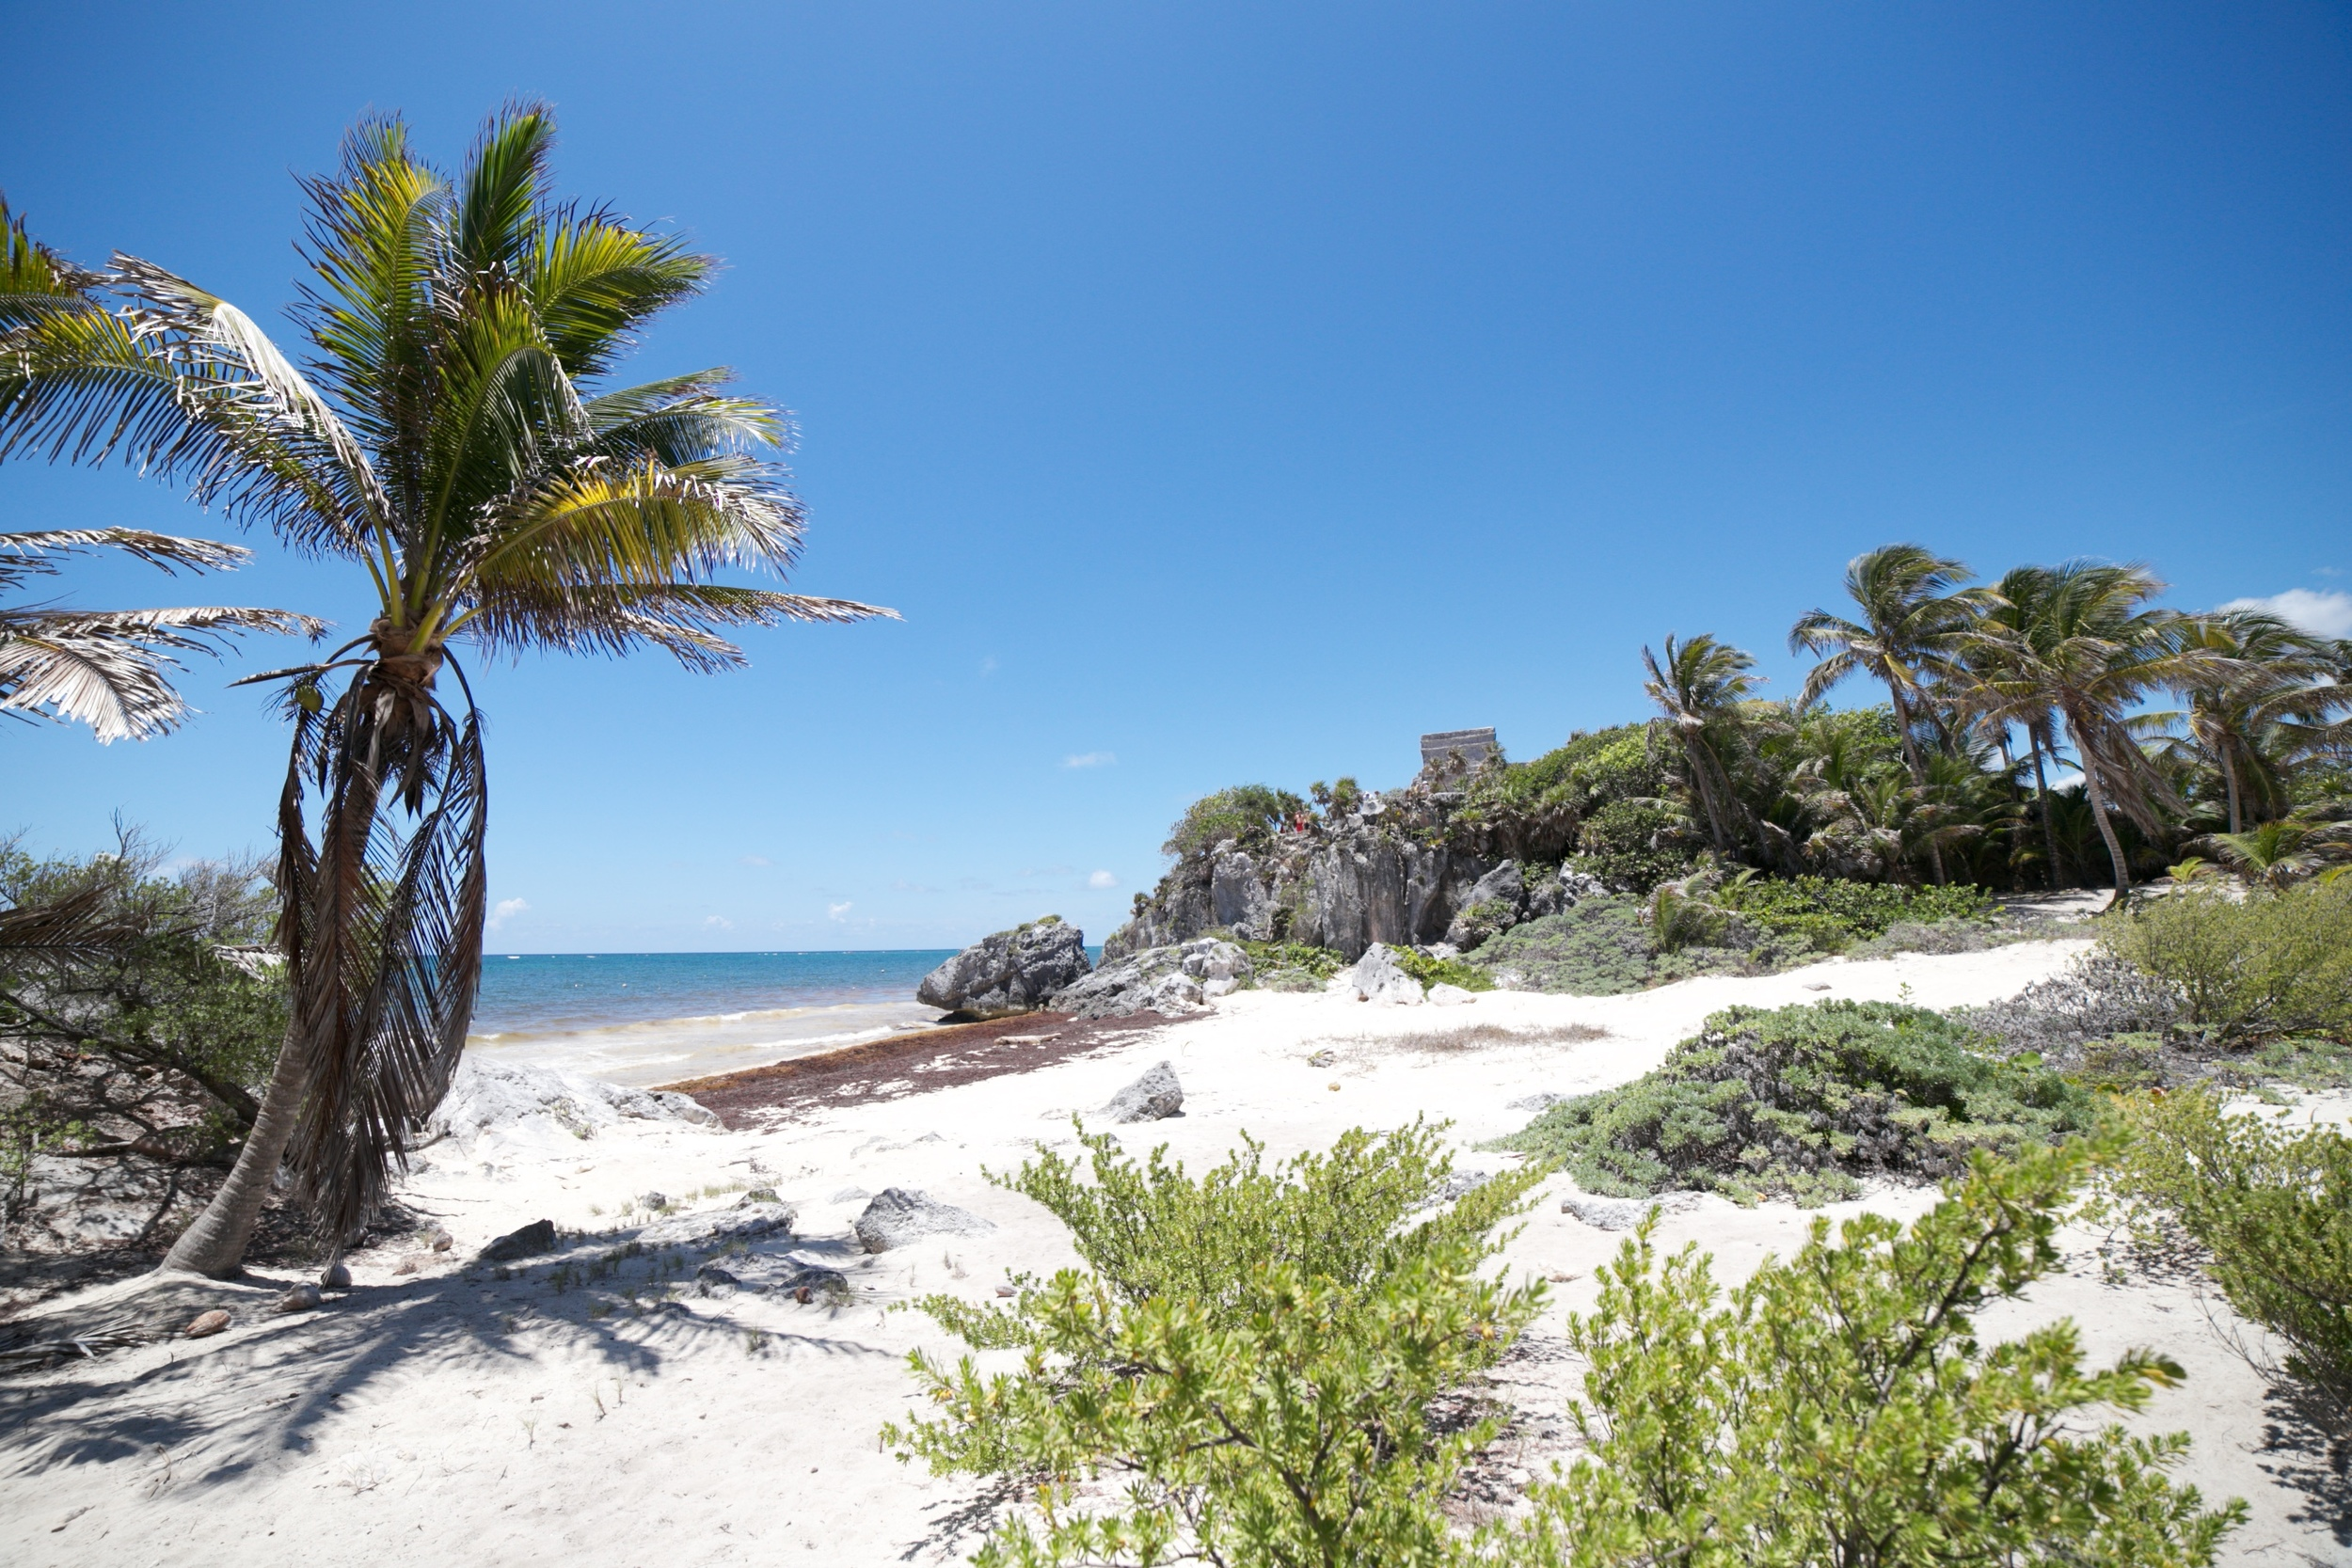 On the beach in Tulum by the ruins.